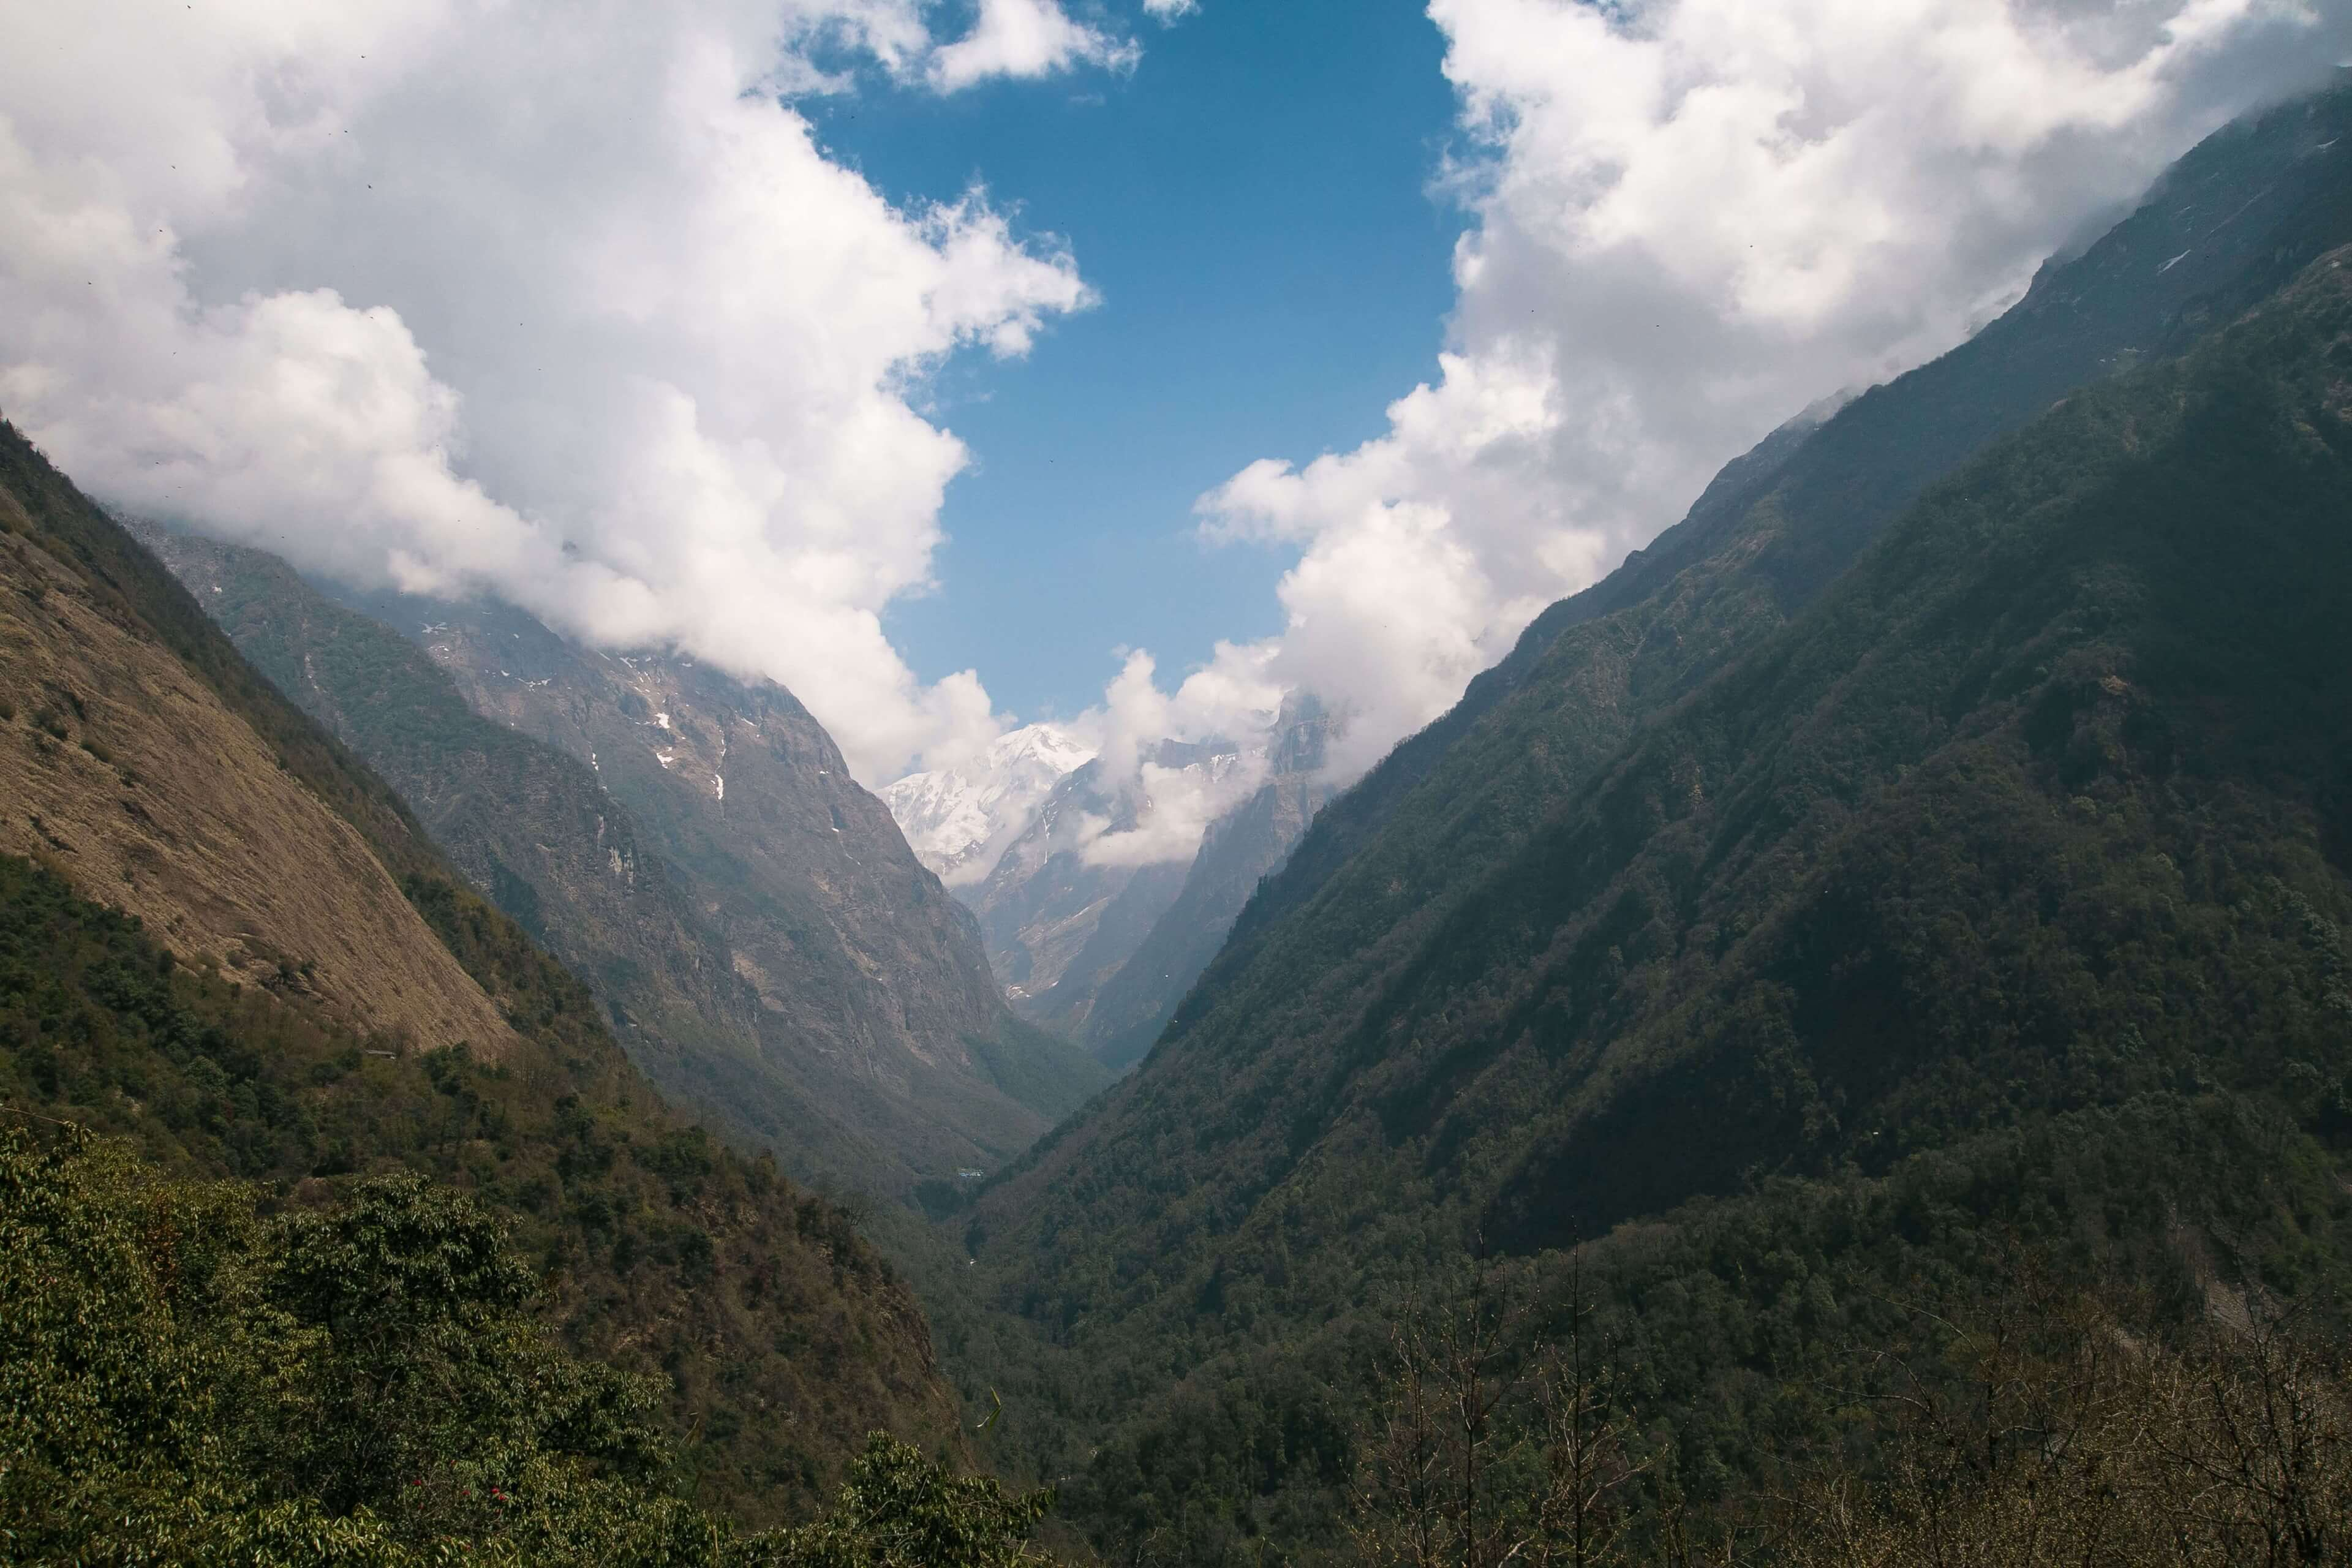 Valley Looking Towards Himalaya